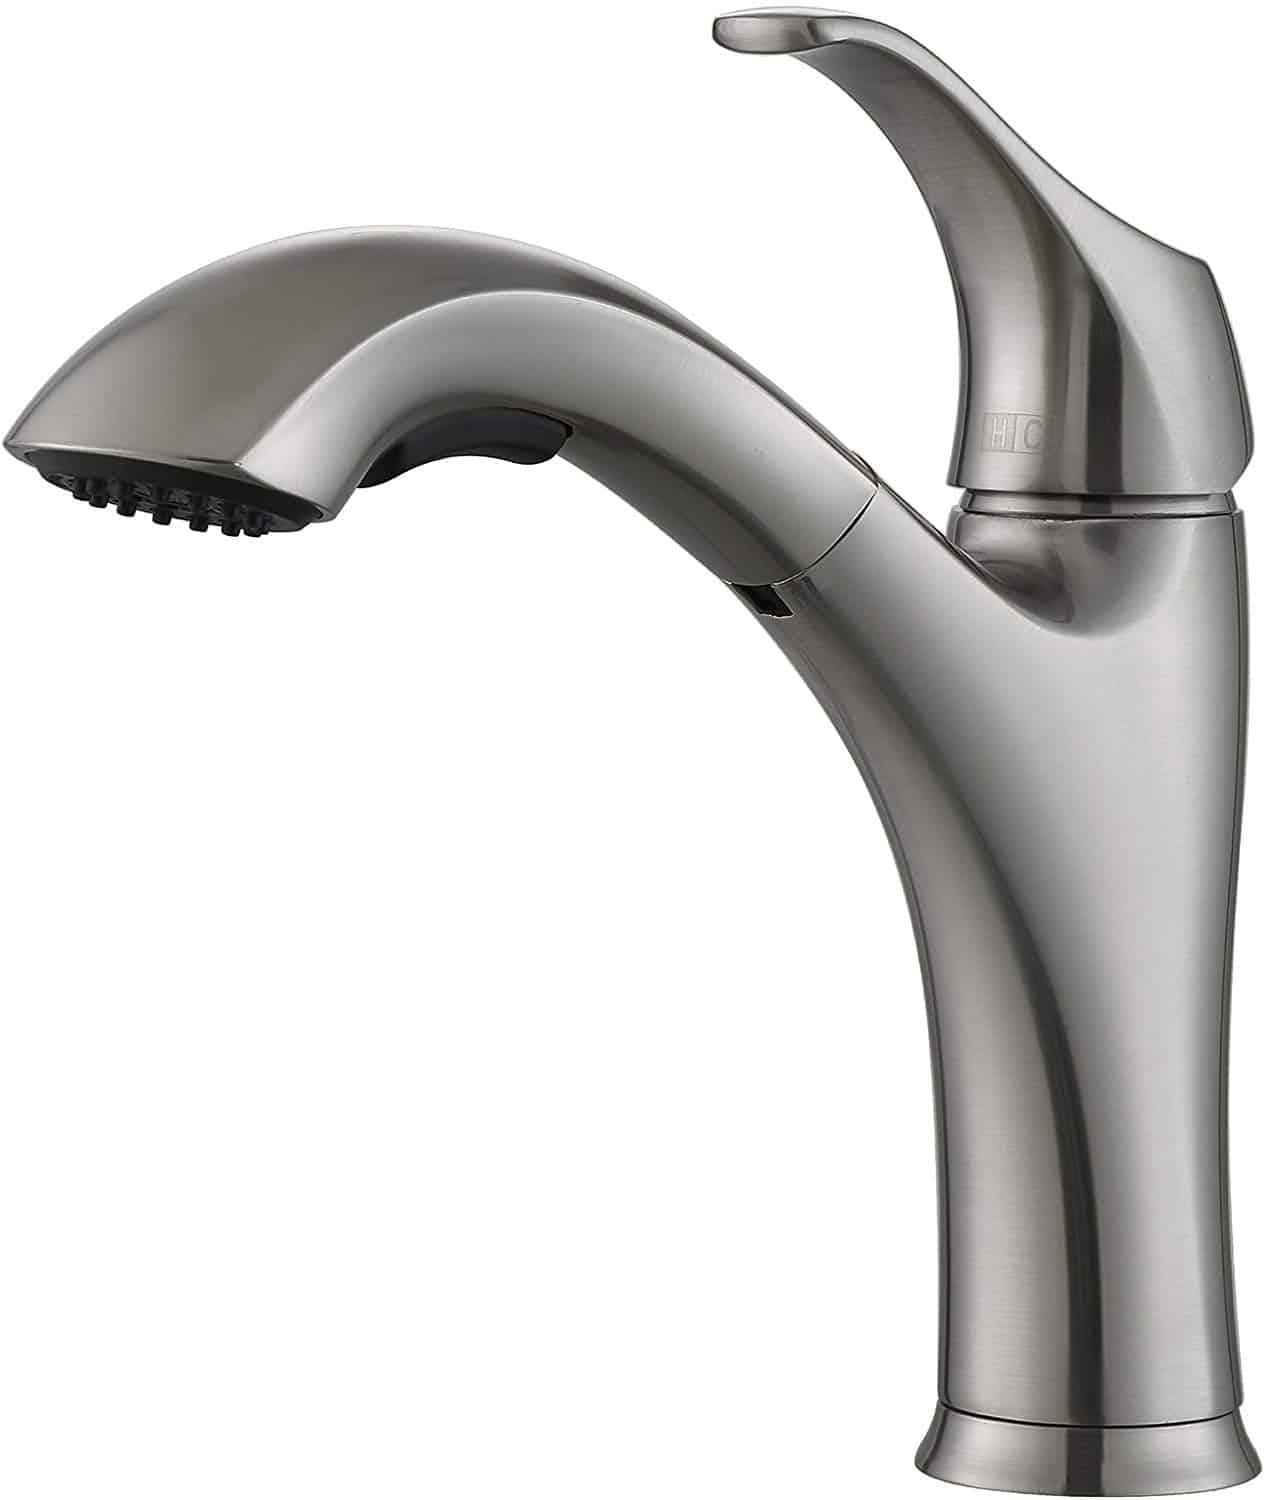 kraus kitchen faucet reviews - top picks